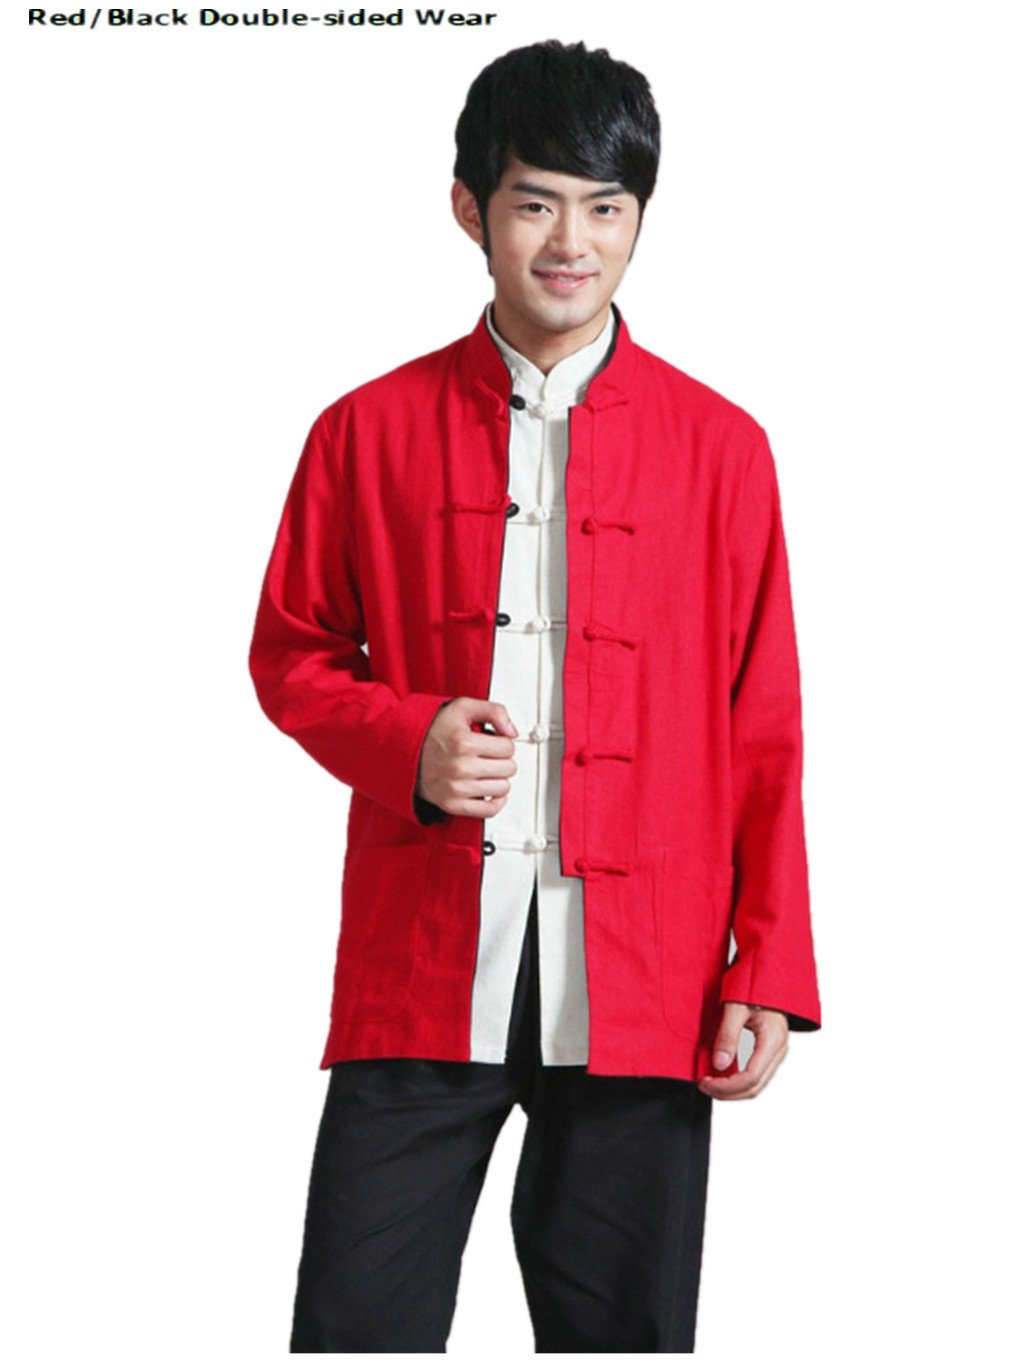 Cotton-flax Tang Suits Double-sided Wear Retro Jackets Nens shirts Business Jackets Full Dress